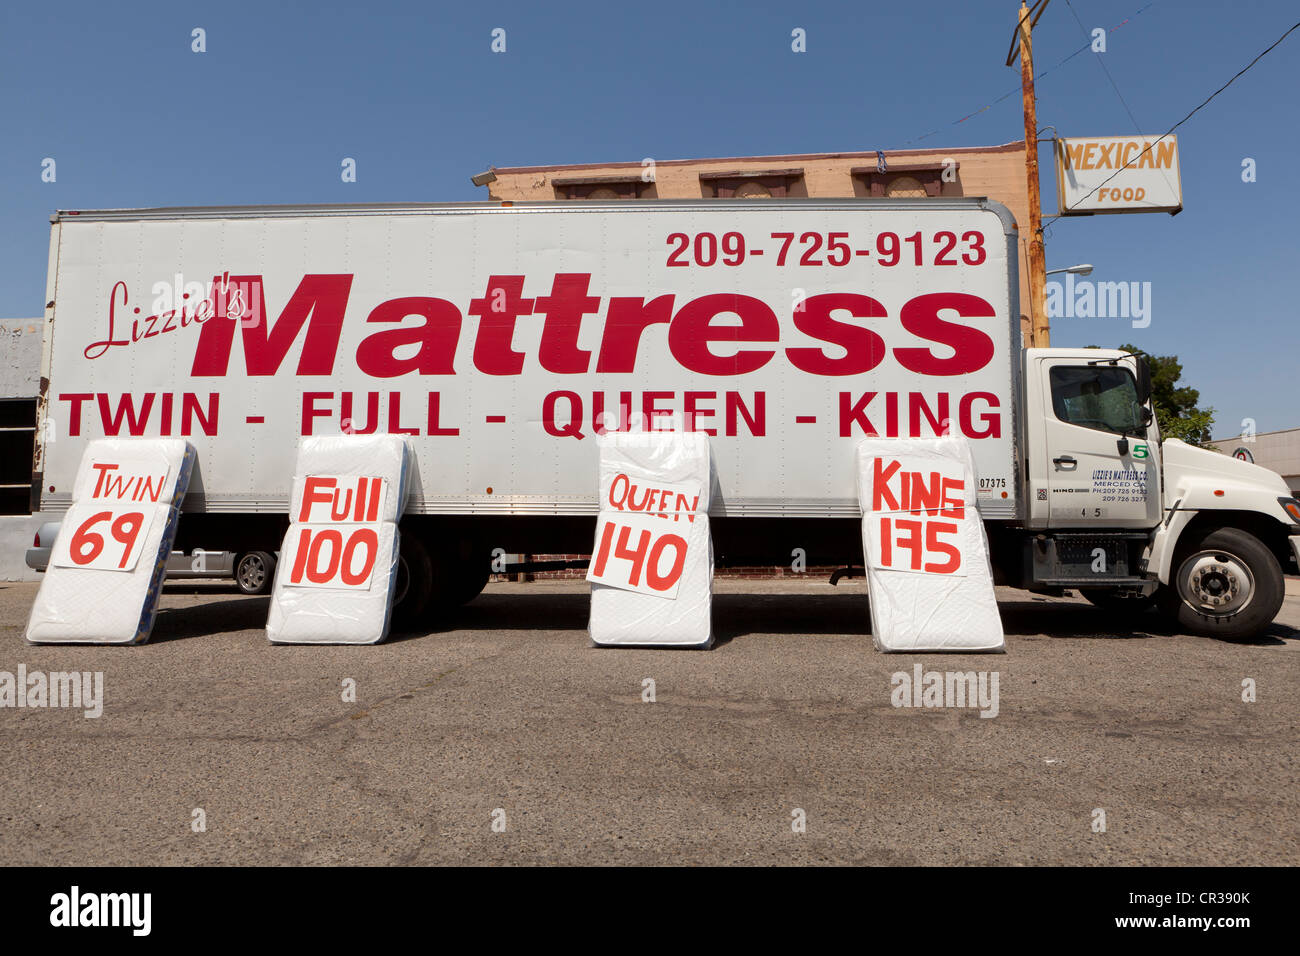 Mattress Sale Stock Photos   Mattress Sale Stock Images   Alamy Mattress sale ad on truck   Stock Image